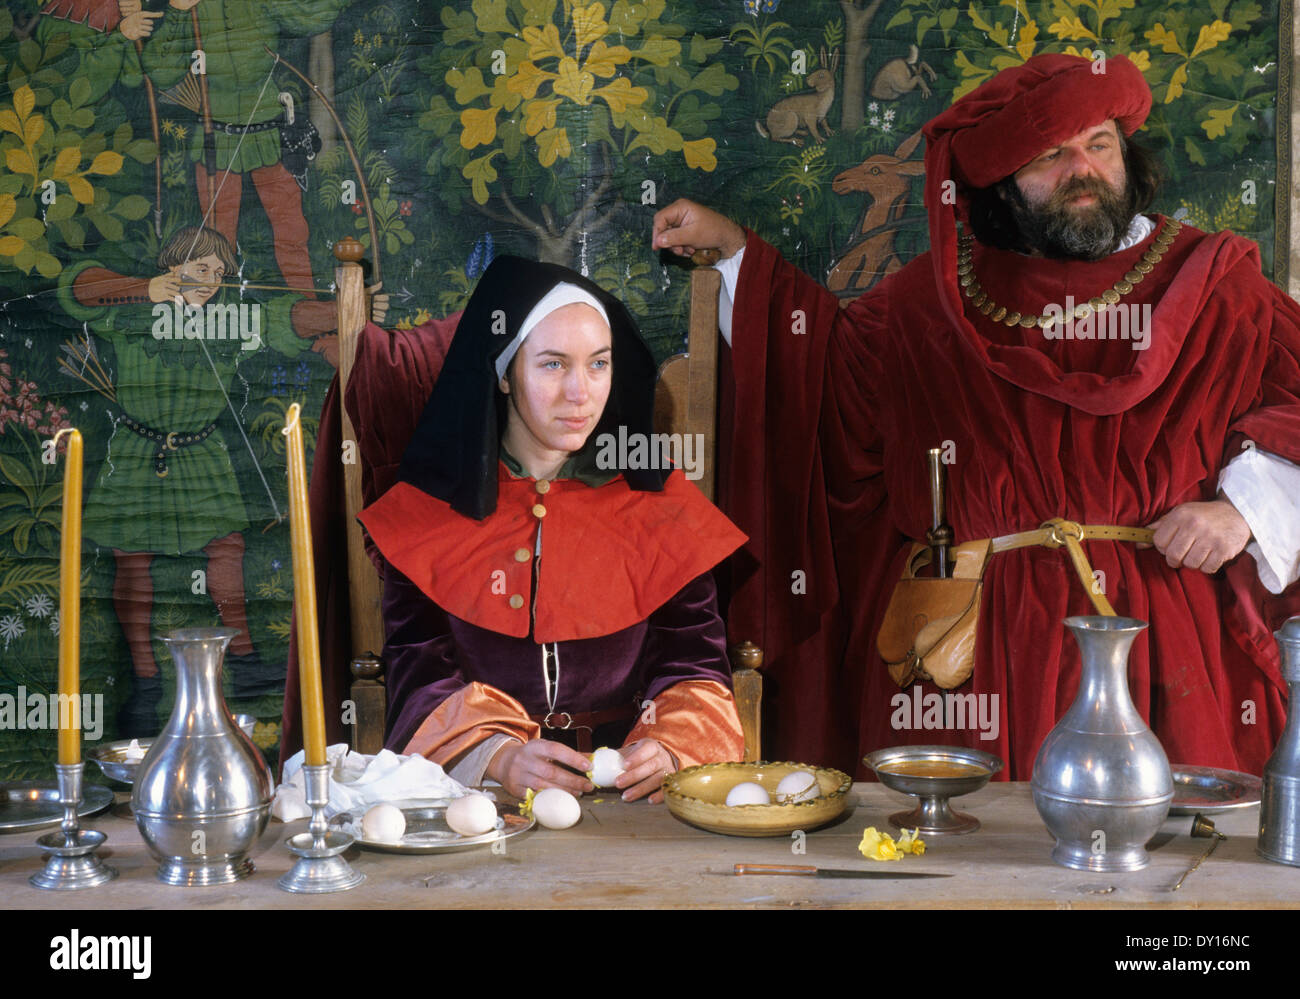 15th century medieval 15th century Lord and Lady in Manor House, historical re-enactment, costume costumes dress fashion fashions England UK - Stock Image